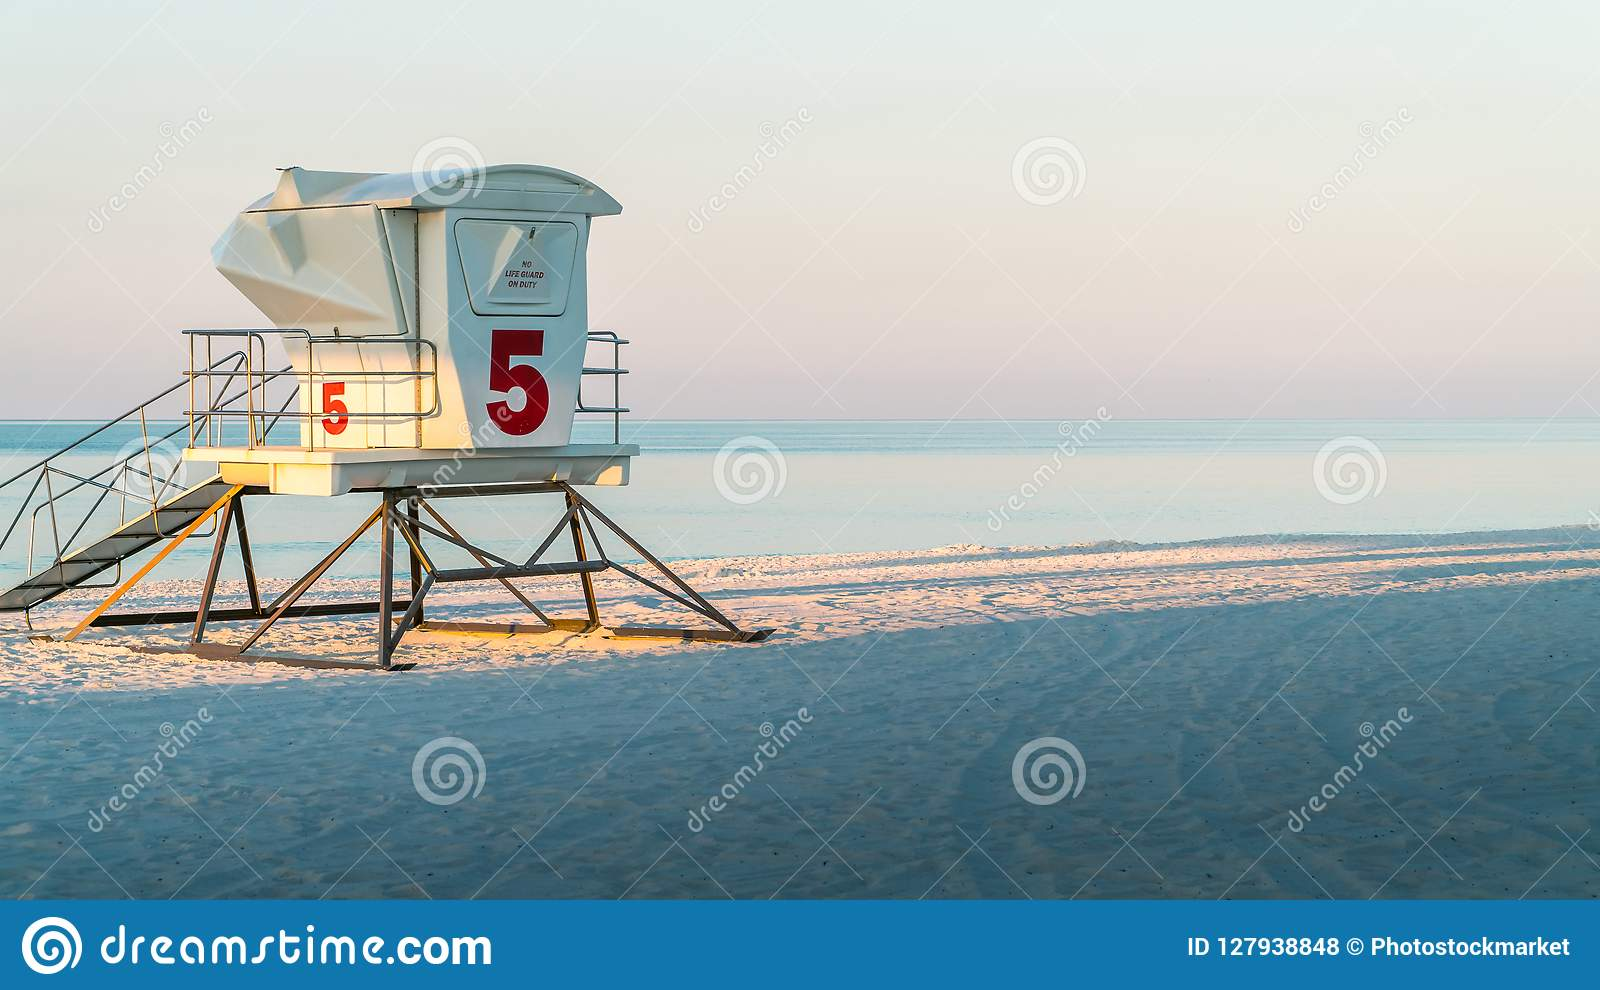 Lifeguard station on a beautiful white sand Florida beach with blue water.